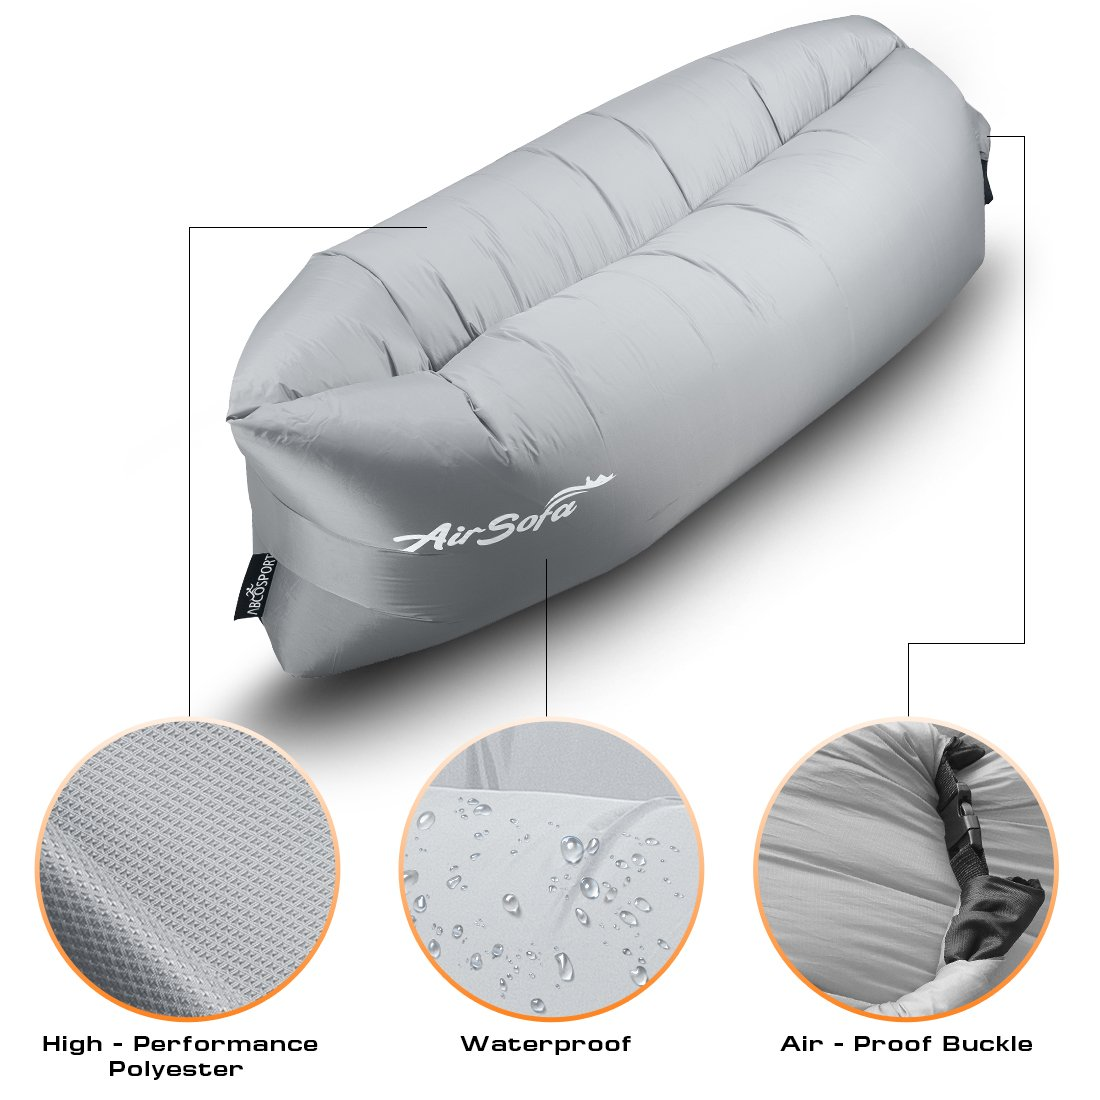 Sleeping bag suit moreover blow up air mattress as well bed inflatable - Inflatable Lounge Bag Hammock Air Sofa And Pool Float Parachute Material Ideal For Indoor Or Outdoor For Camping Hiking Lazy Bed Gray Amazon Co Uk